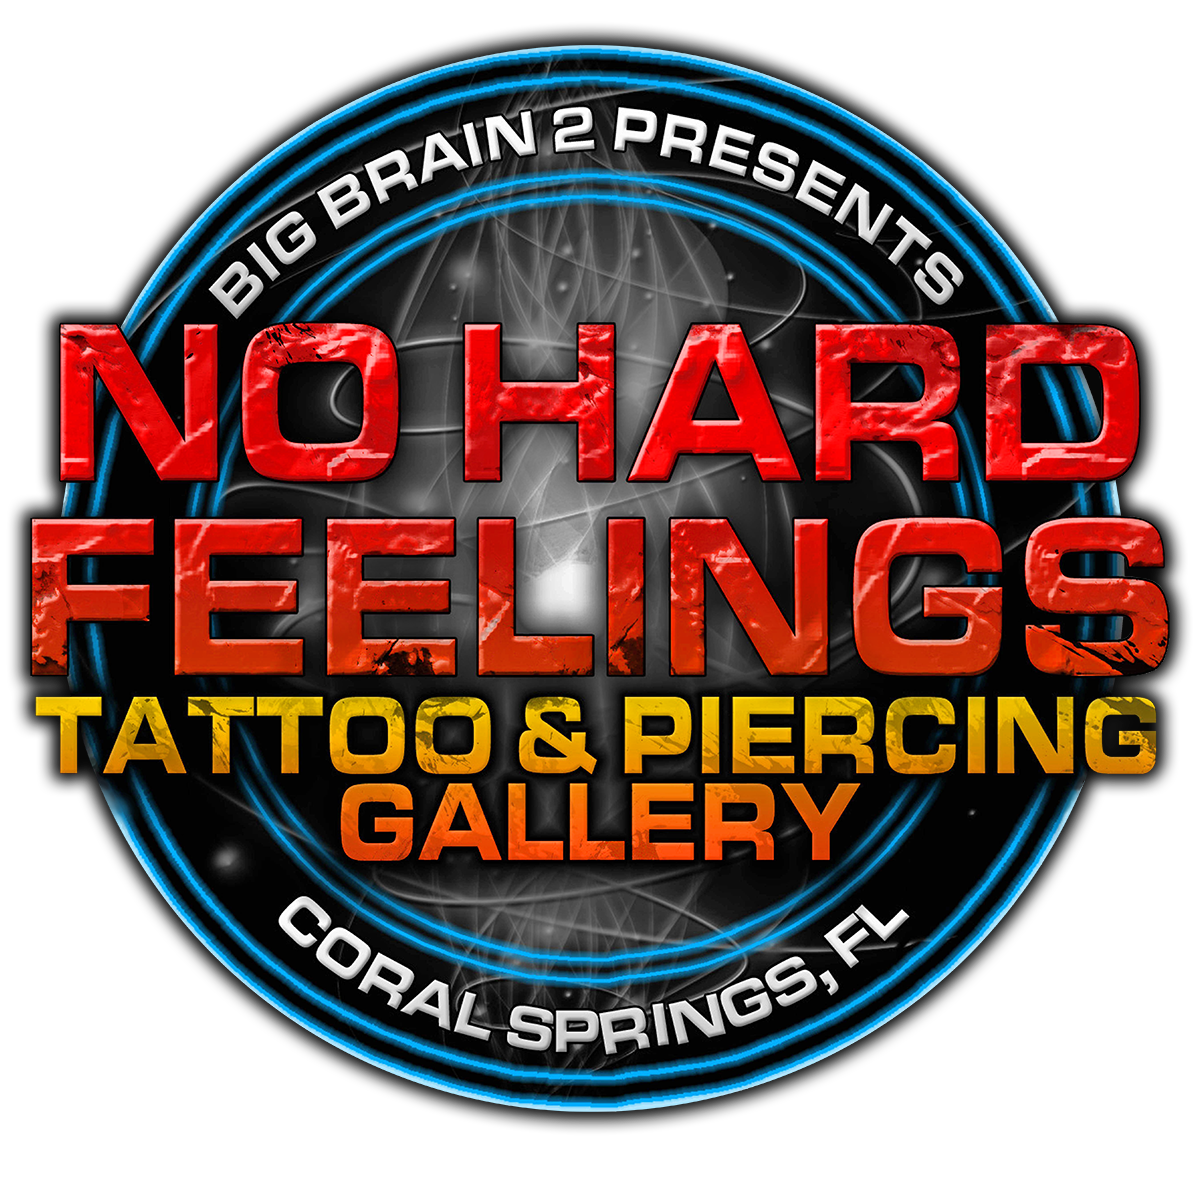 No Hard Feelings Tattoo & Piercing